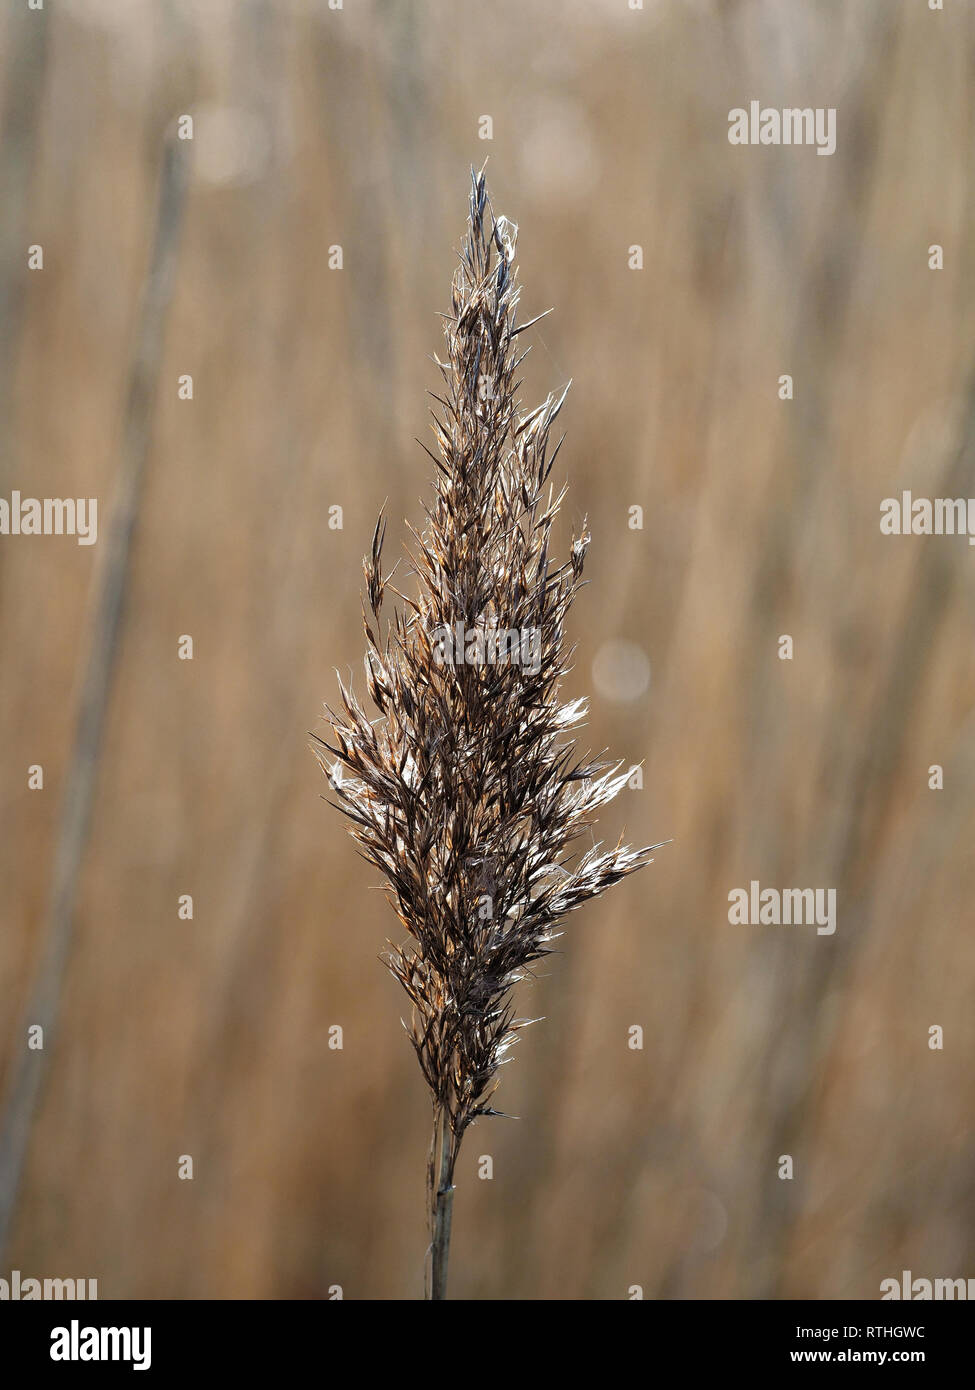 Reeds (Plant) grass-like plants, Wales, UK - Stock Image